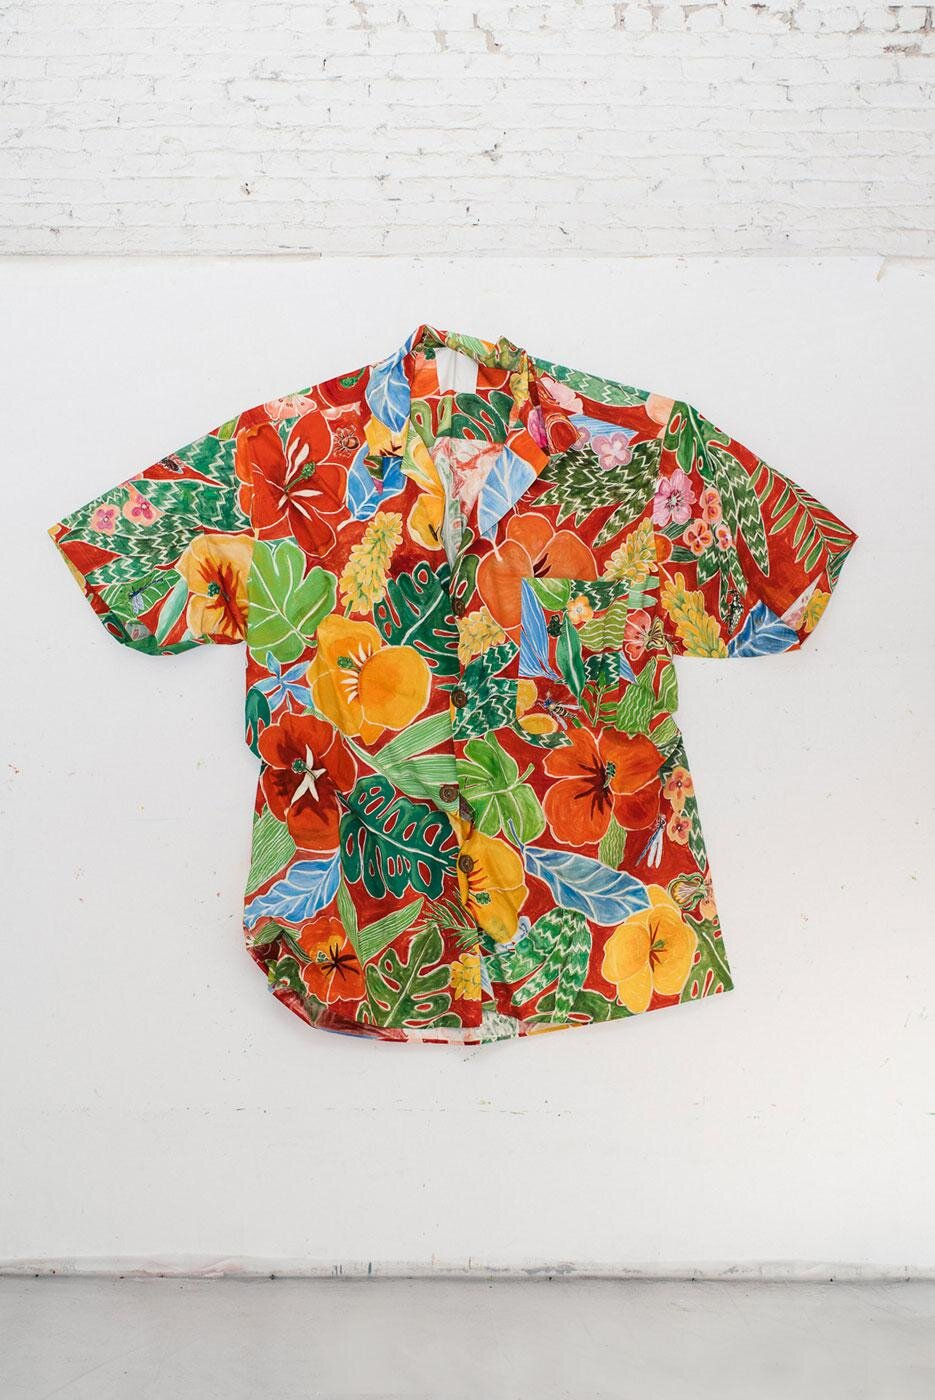 Sidney Russell, Big Wave, Paradise Hawaiian Shirt